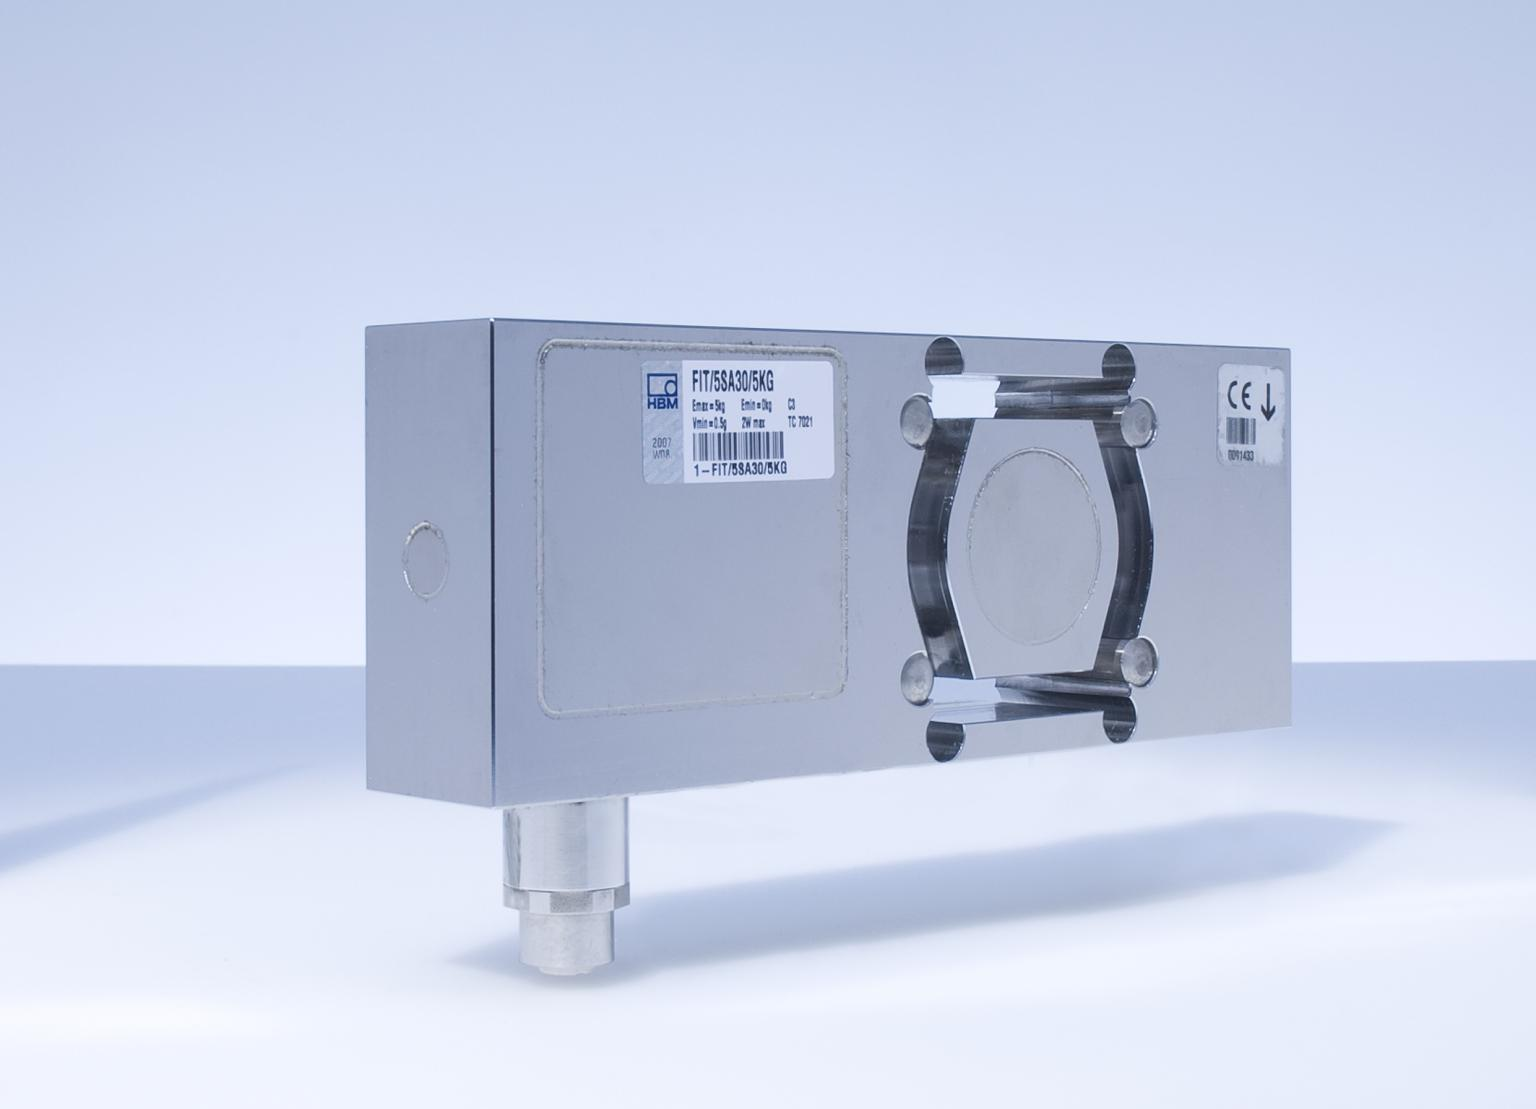 The FIT5A digital load cell for speed and reliability in dynamic weight checks